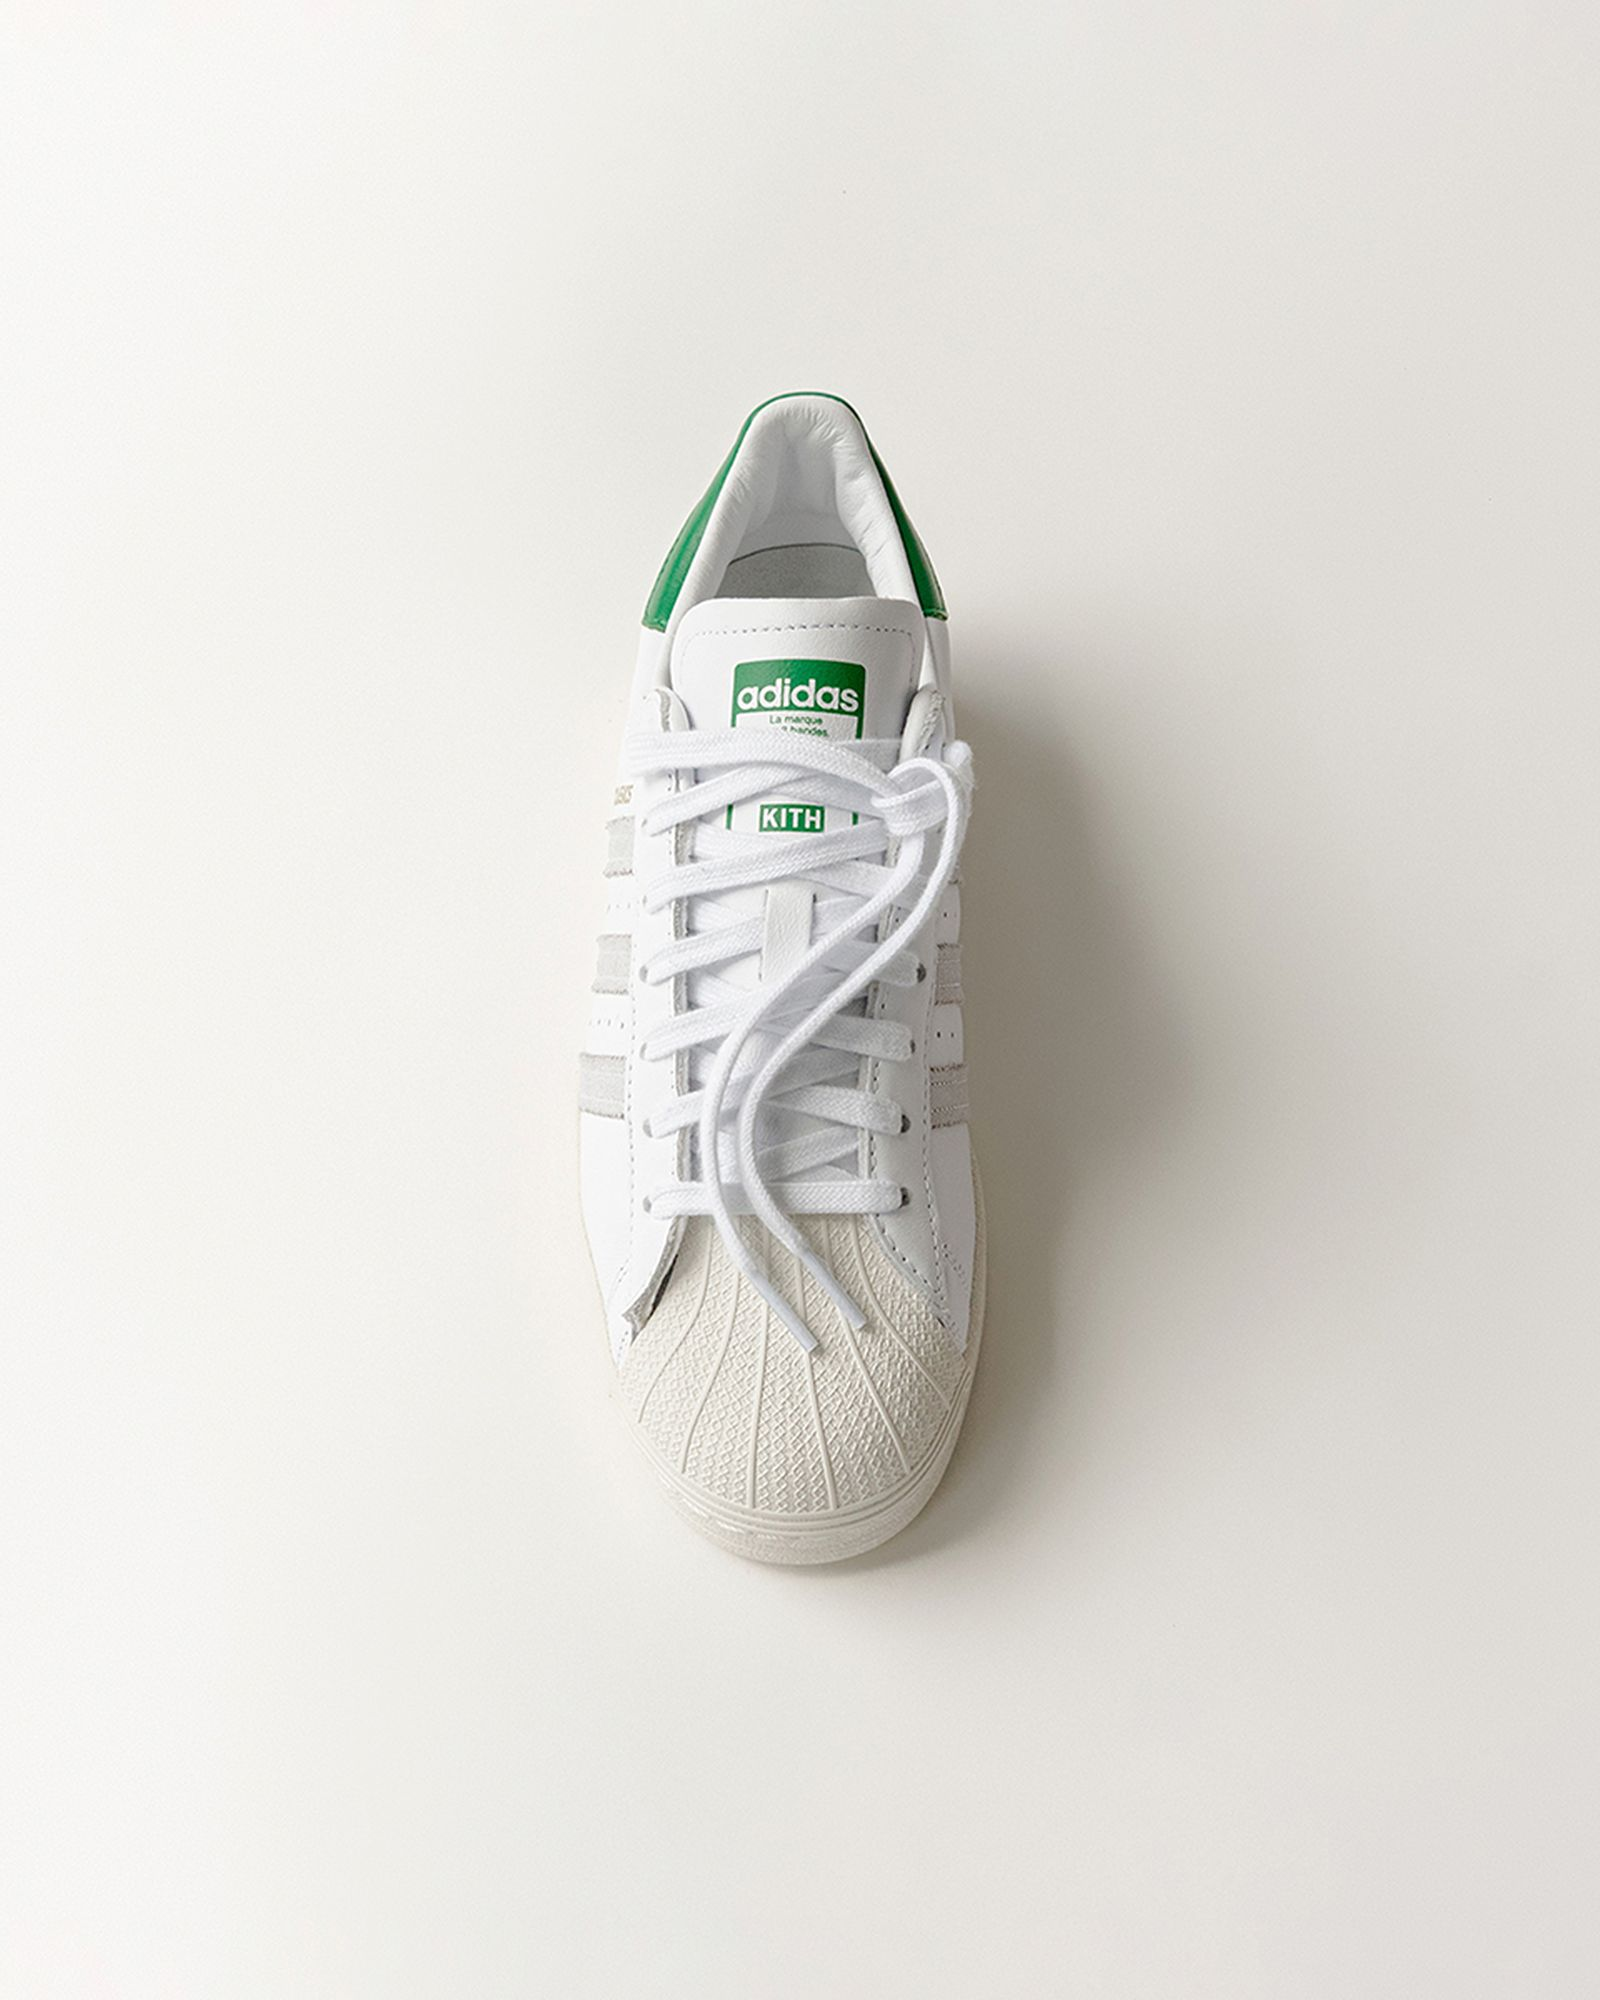 kith-adidas-summer-2021-release-info-31